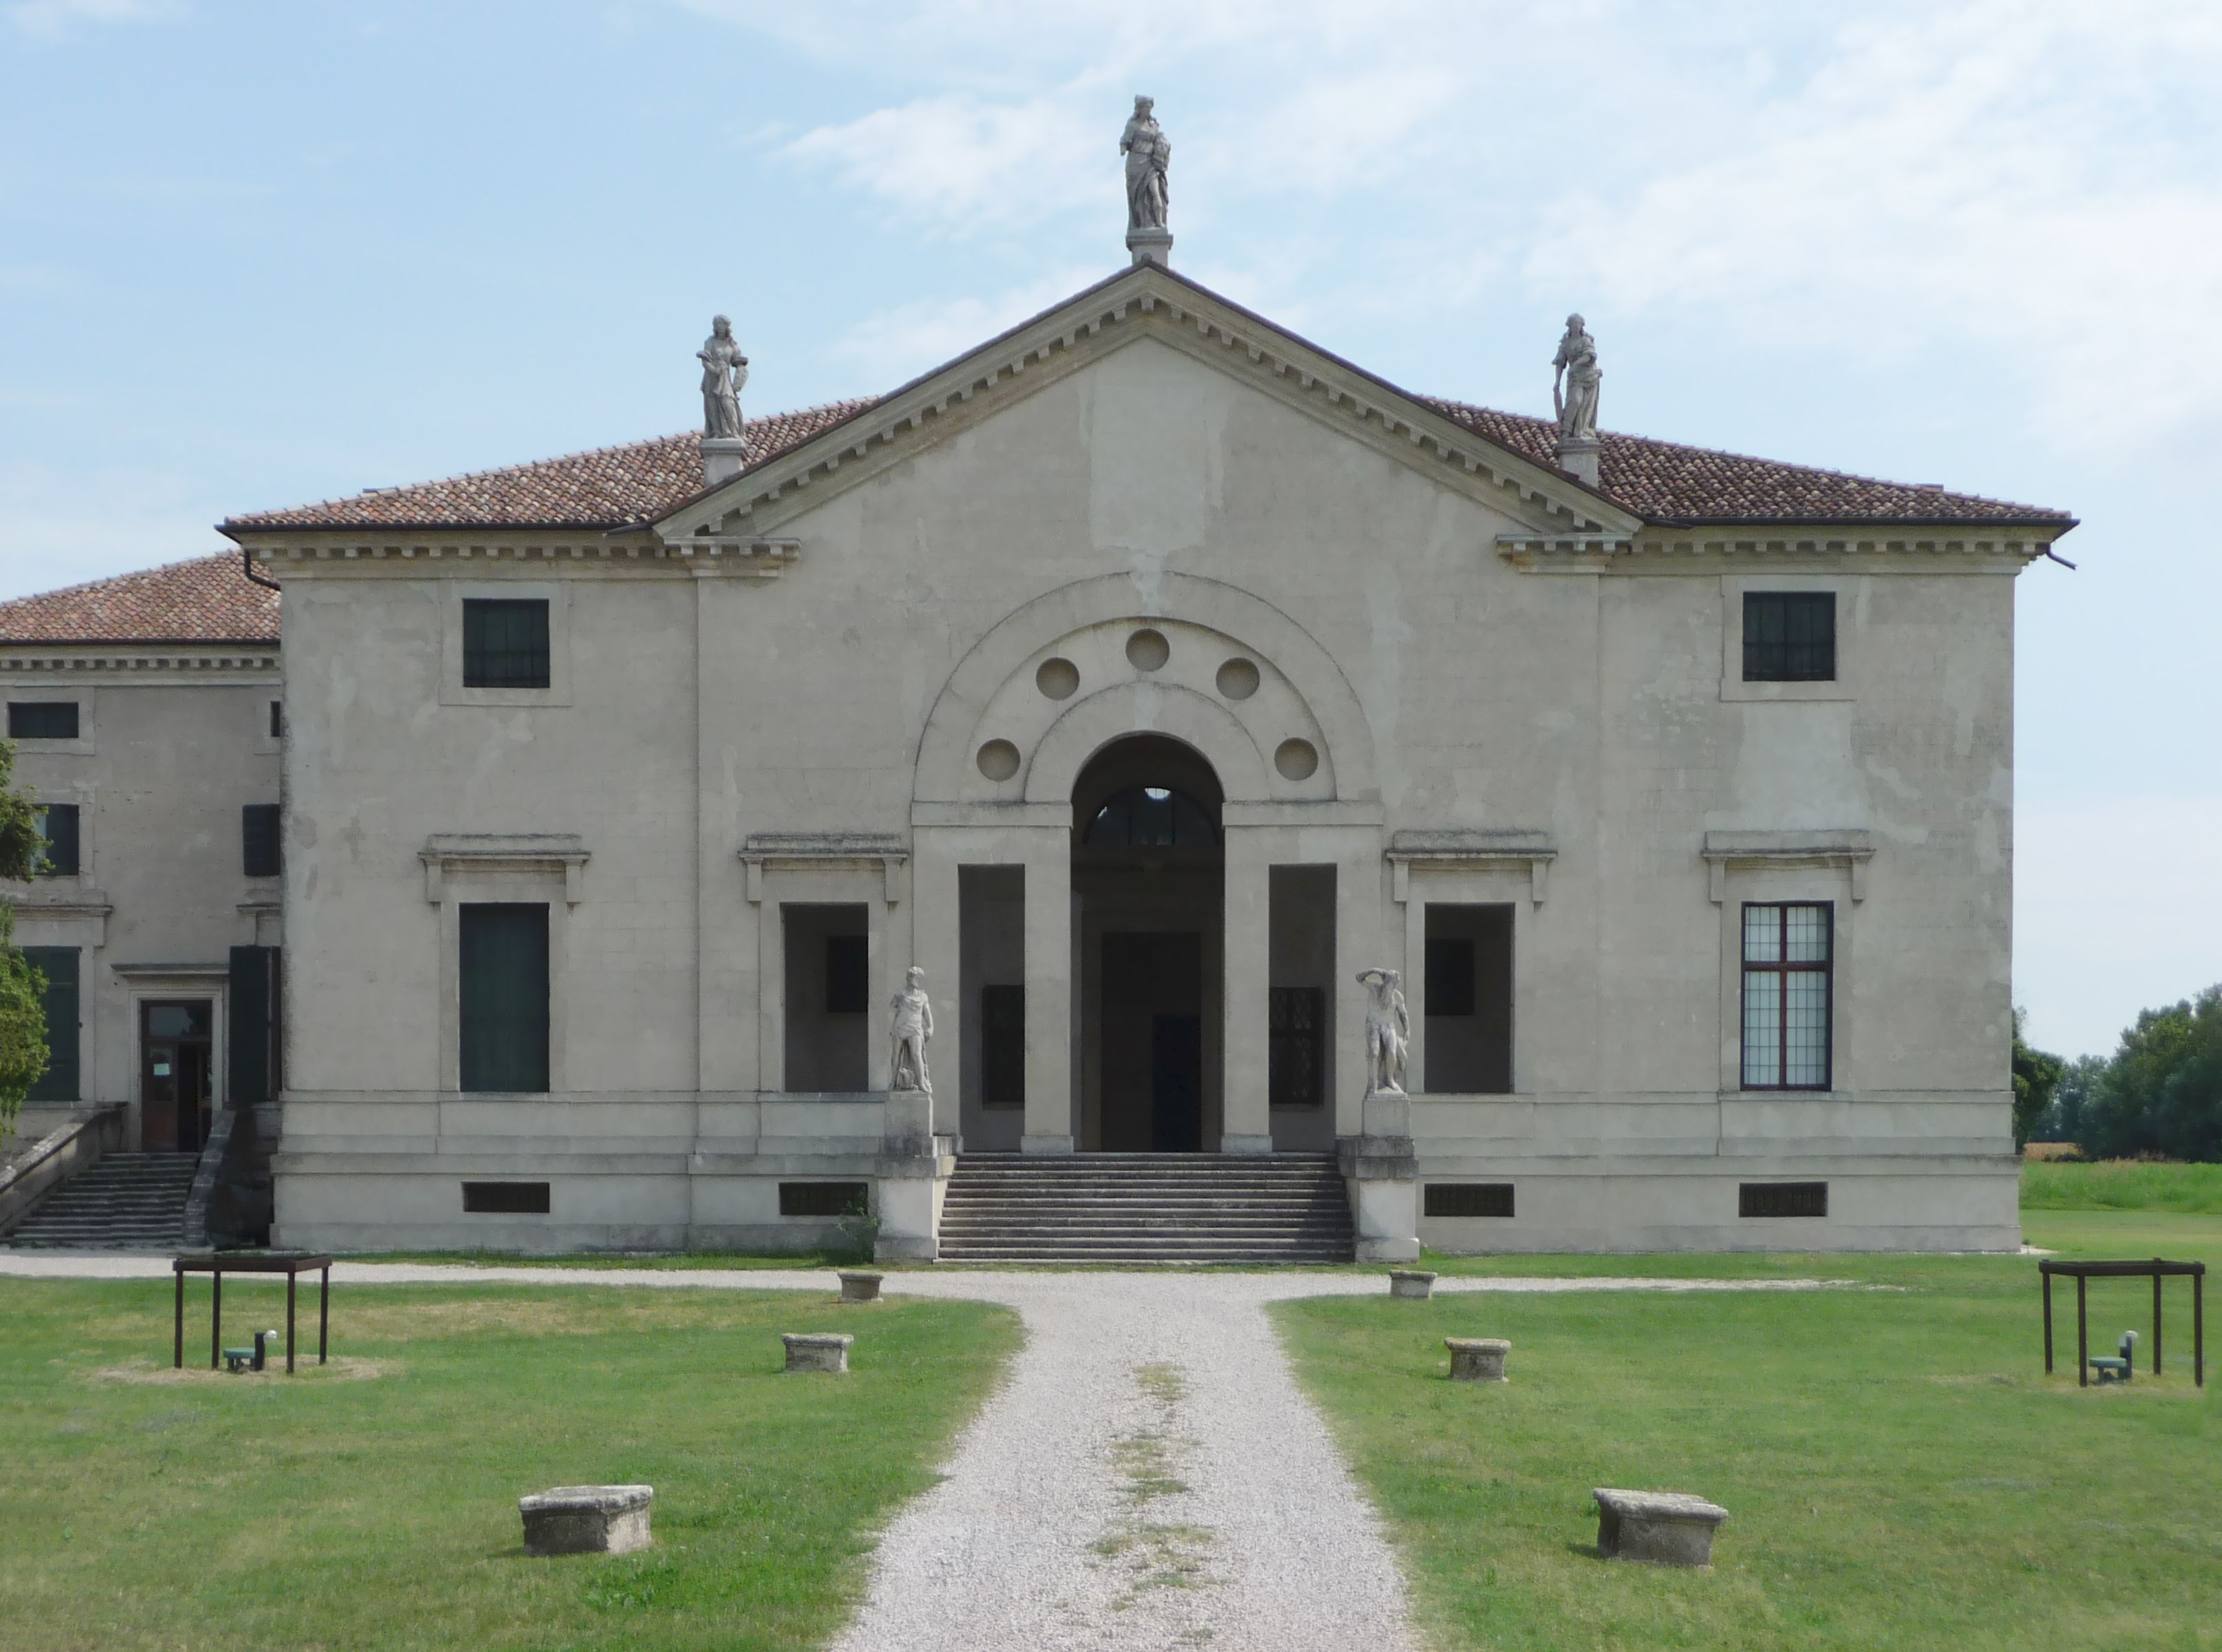 Villa Pojana by Andrea Palladio - It's my favourite because of an entrance and overall it's different than others Palladio's villas. It was built in 1548-49.